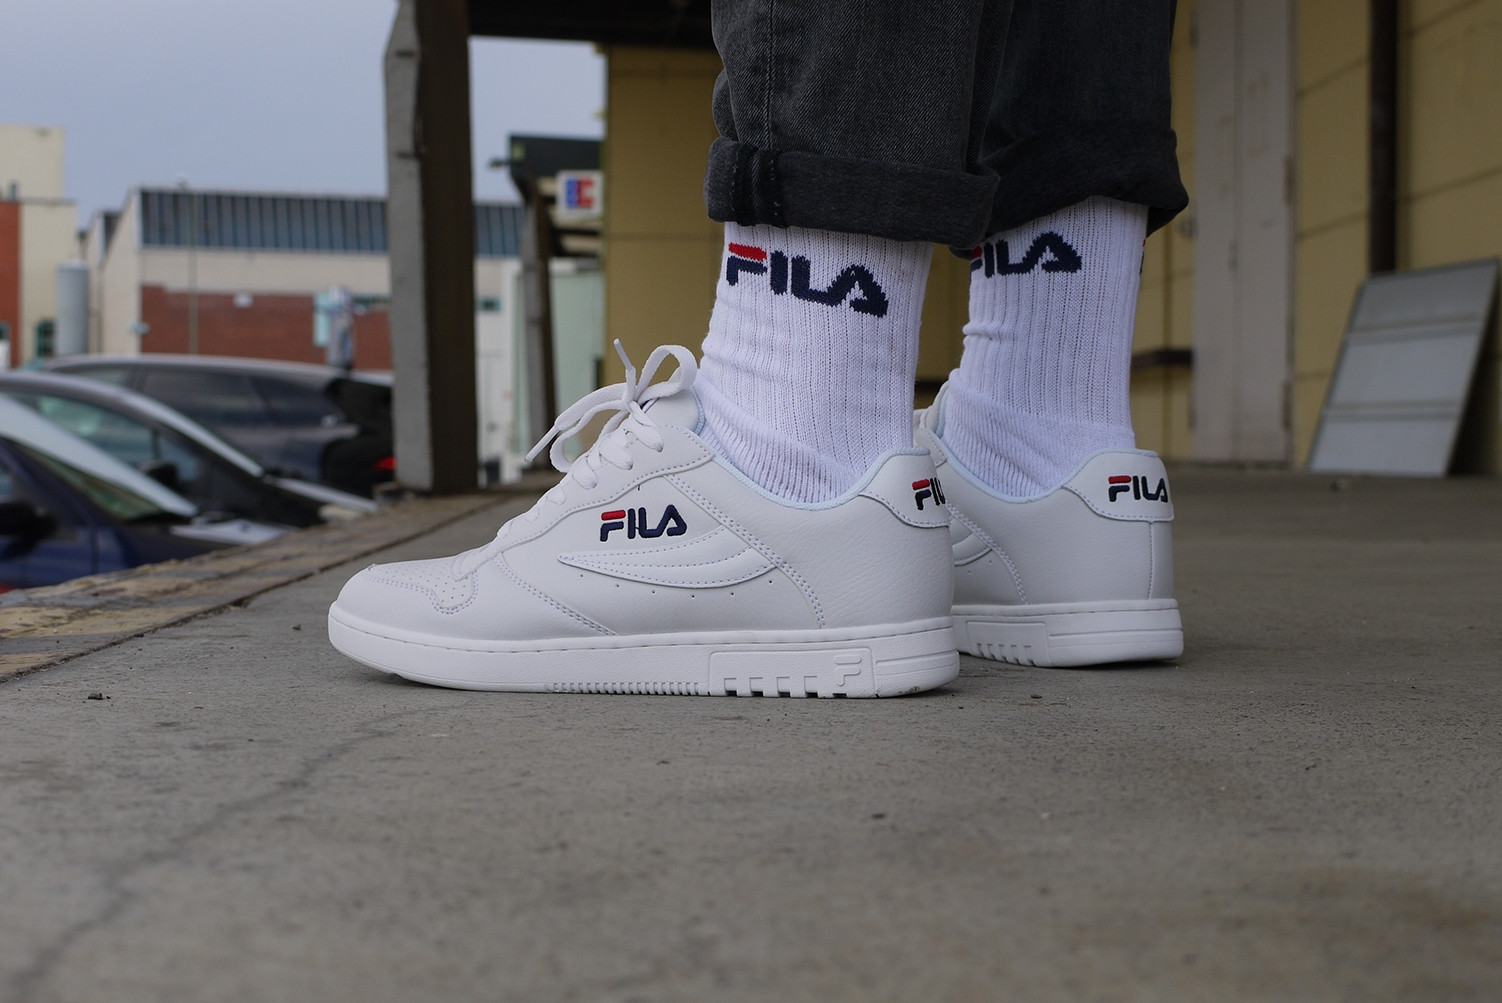 Fila FX-100 Heritage Low Mens Sneaker Shop